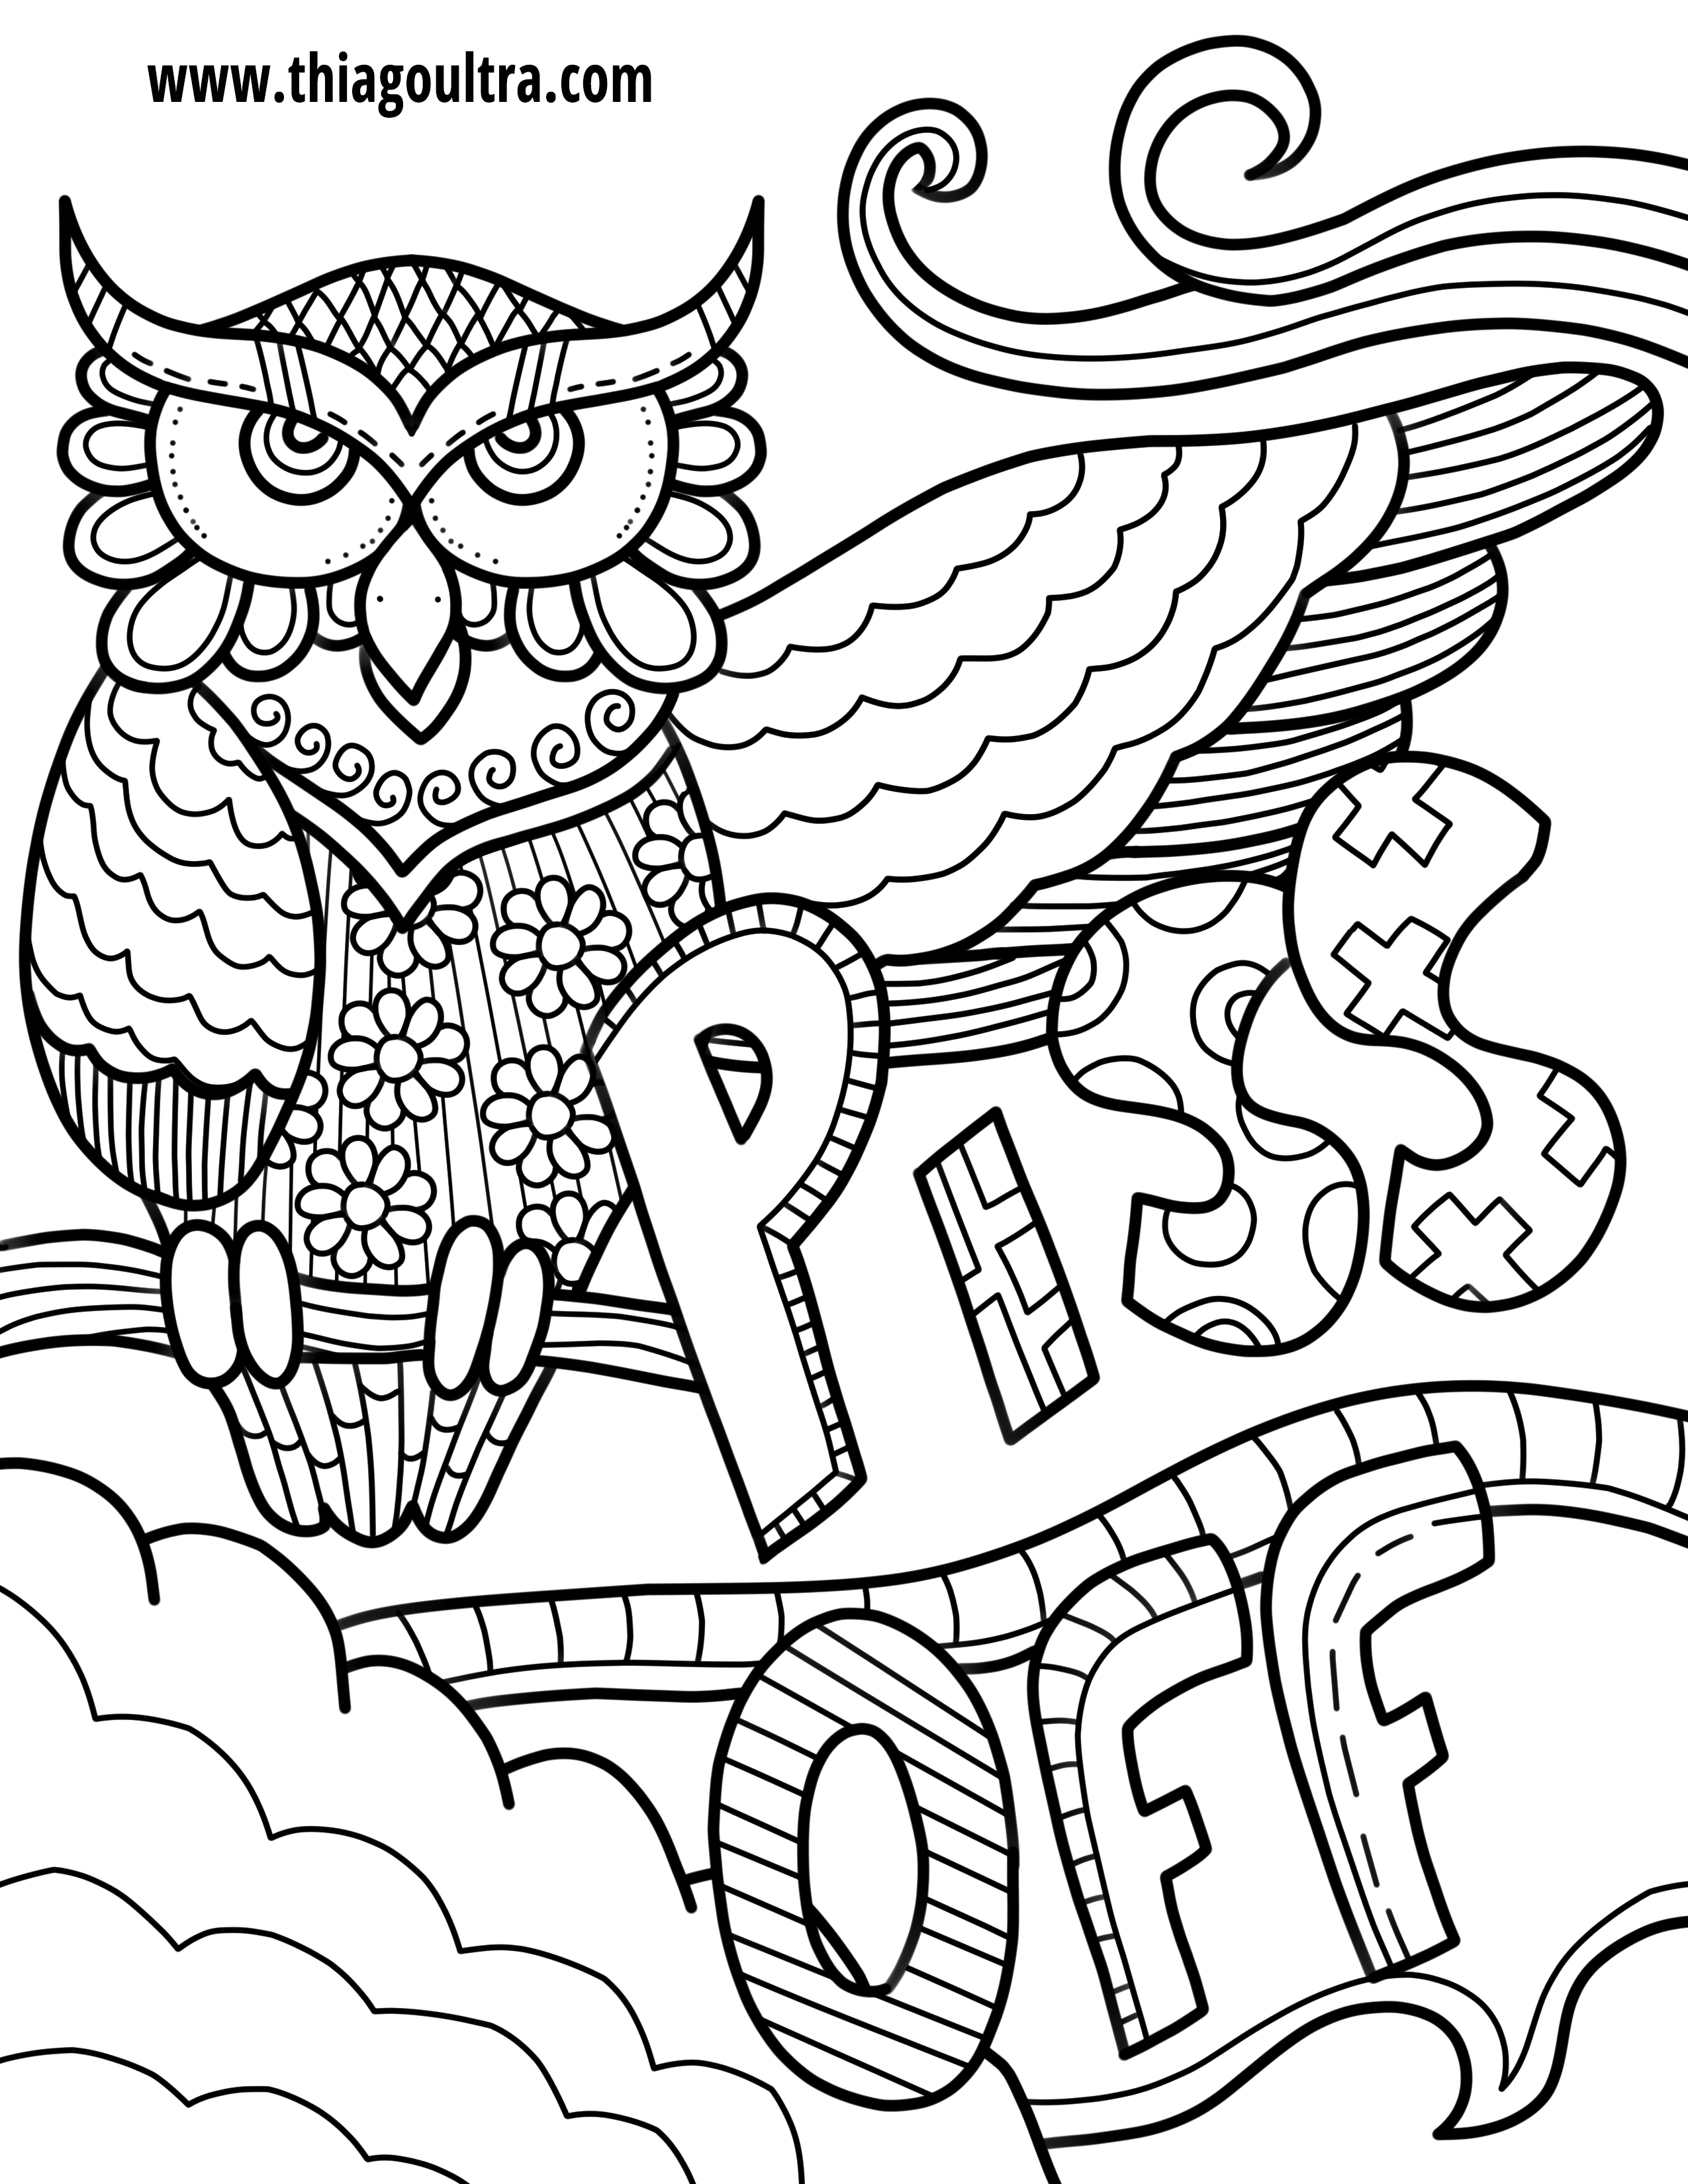 Coloring Pages : Free Coloring Pages Printable Napisy Me Reward - Swear Word Coloring Pages Printable Free